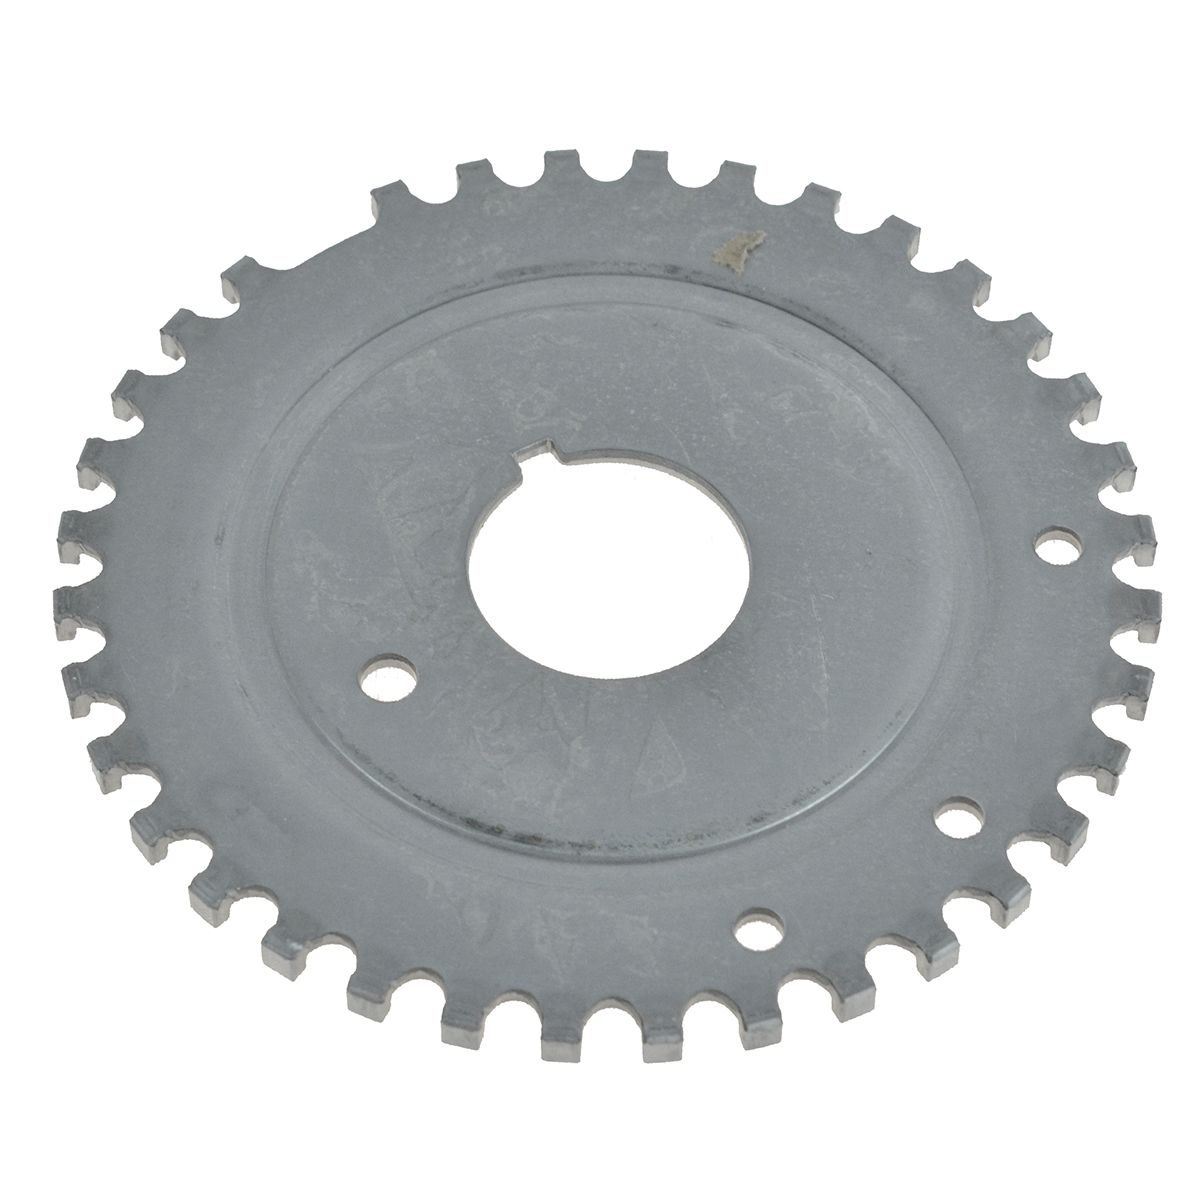 Details about OEM XW1Z12A227AC Crank Pulsator Ring Trigger Wheel 36-1 for  Ford Lincoln Mercury